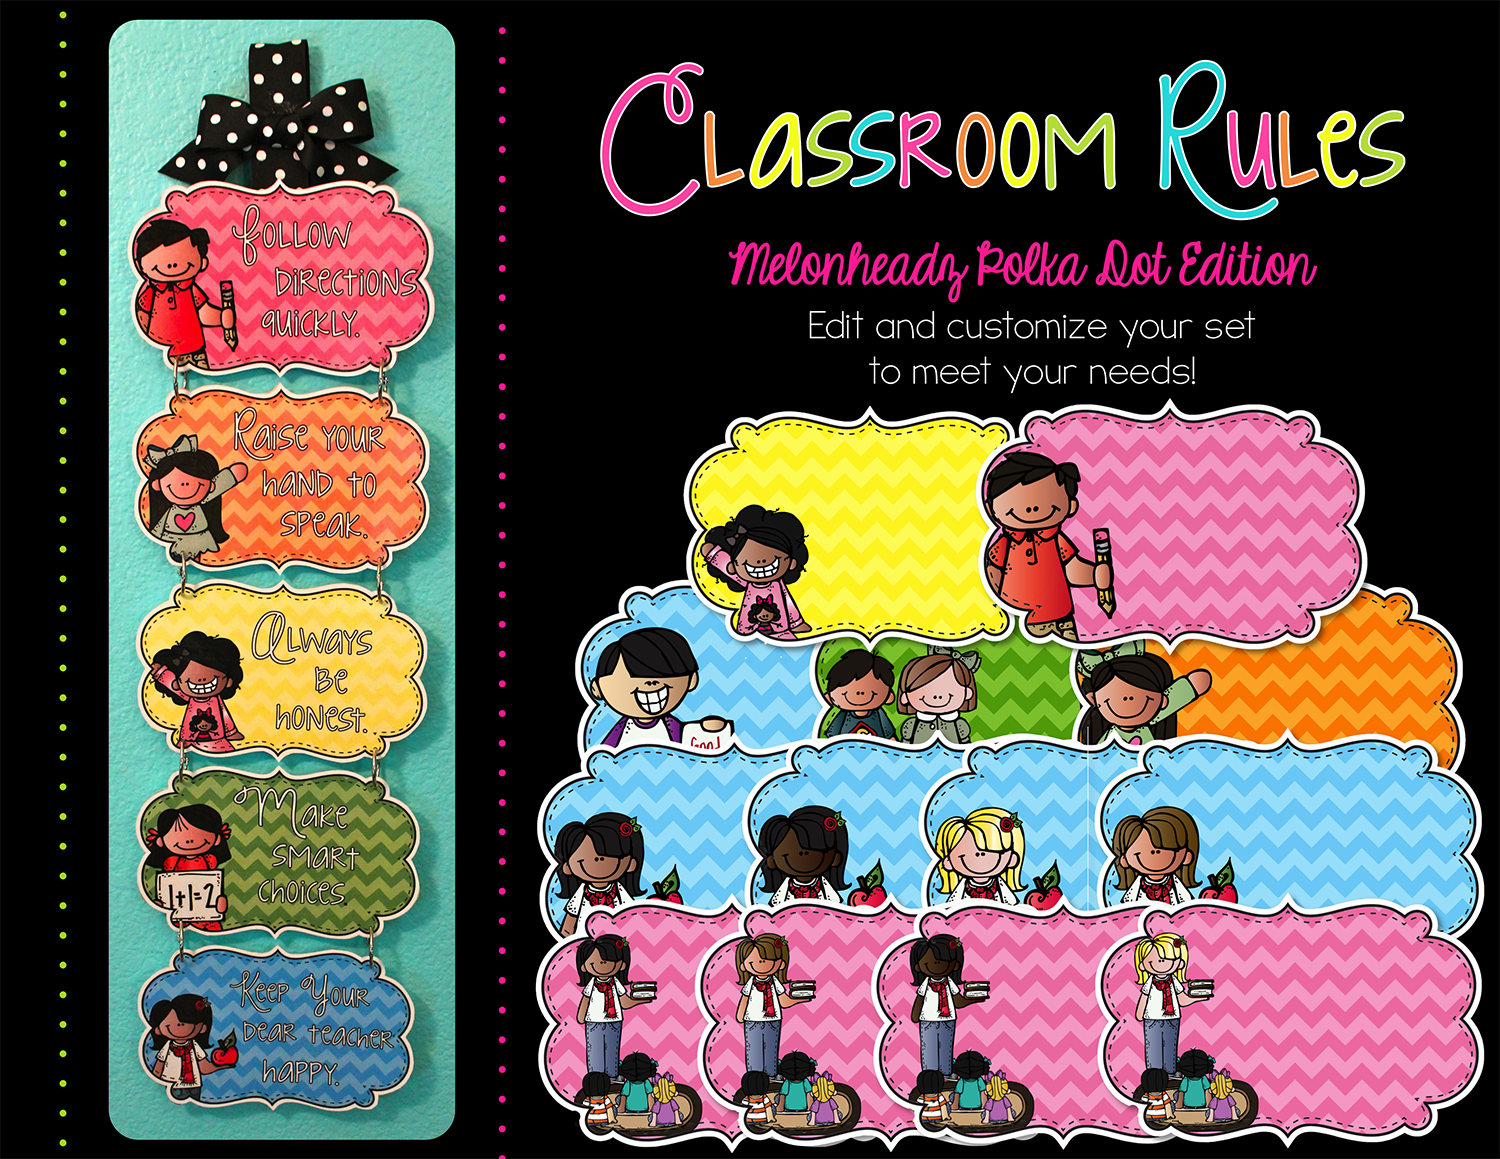 http://www.teacherspayteachers.com/Product/Editable-Classroom-Rules-Melonheadz-Chevron-Edition-1336749